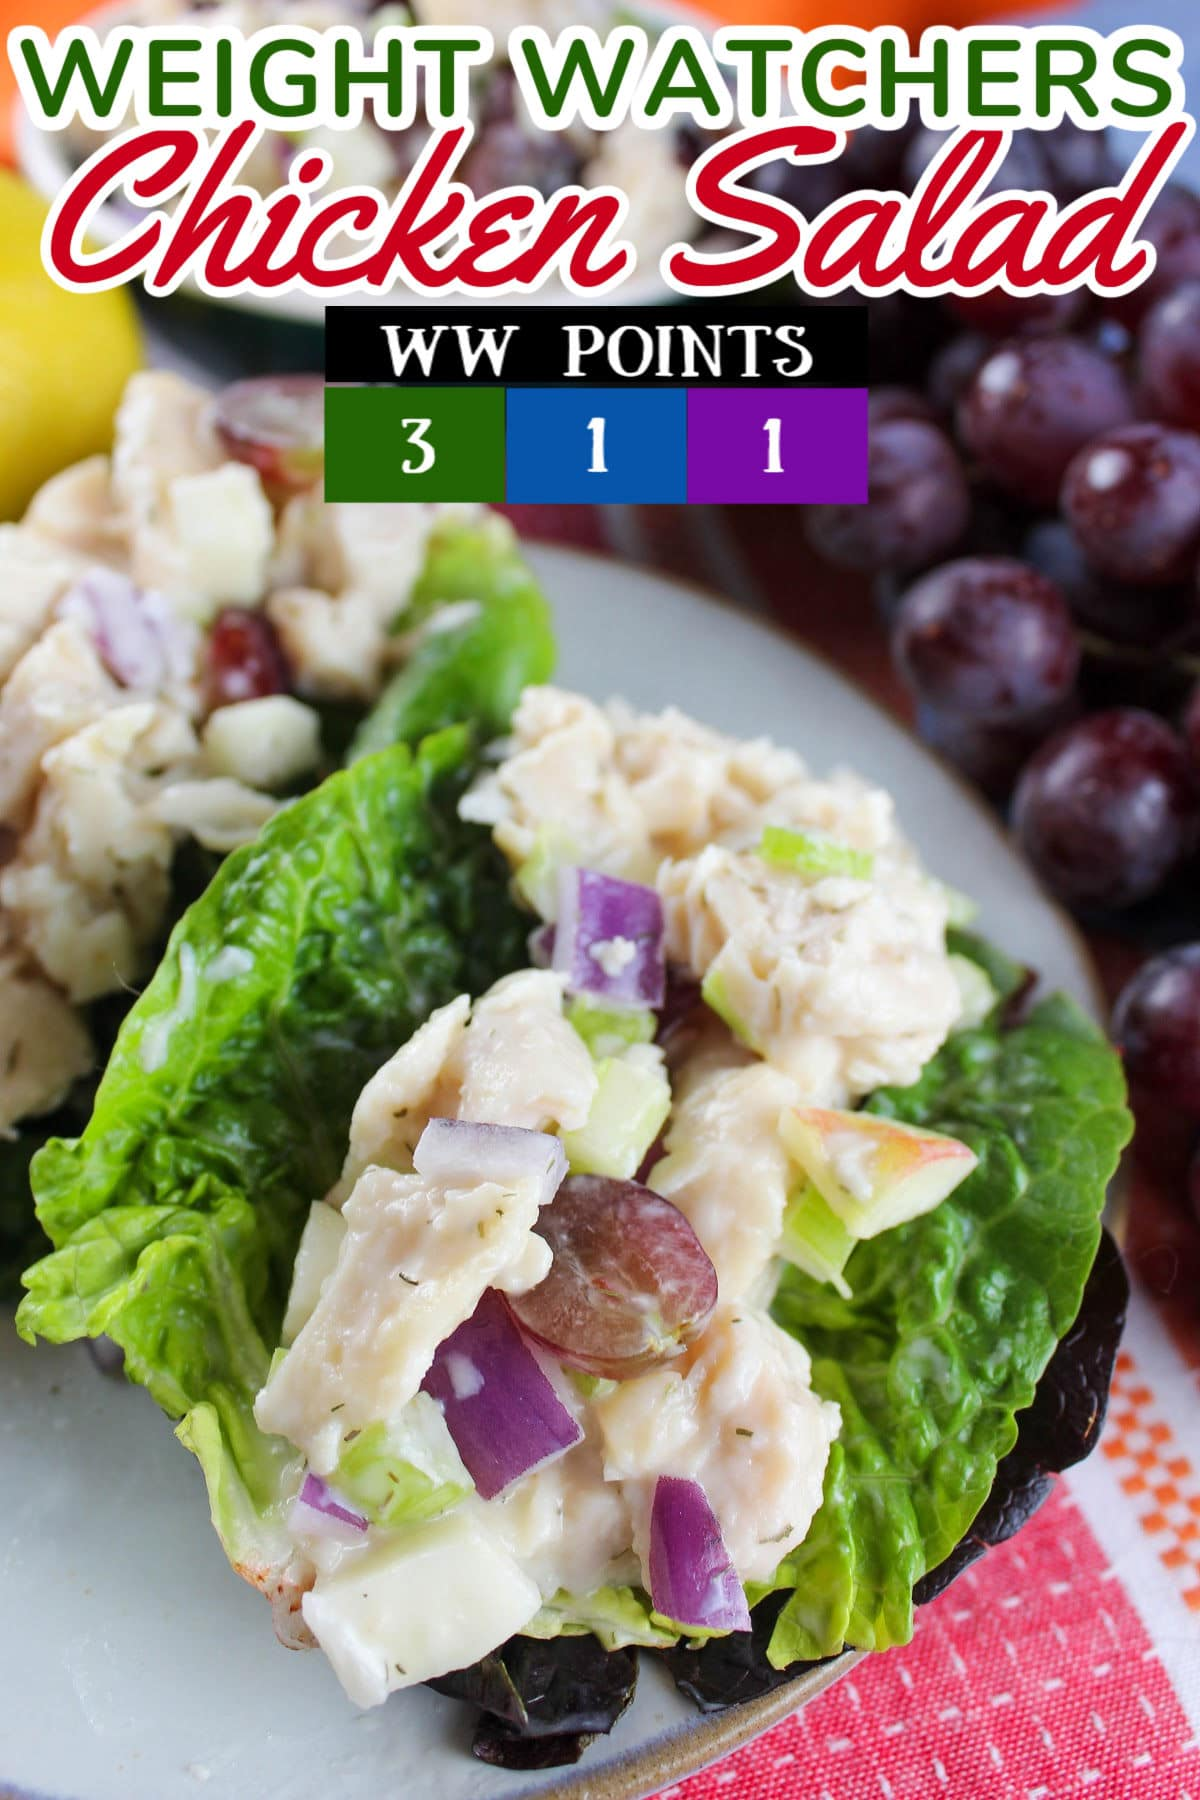 This Weight Watchers Chicken Salad will take care of that craving for chicken salad while still helping you lose weight! It's light and crunchy with a touch of sweet - and it's my new favorite lunch!  via @foodhussy